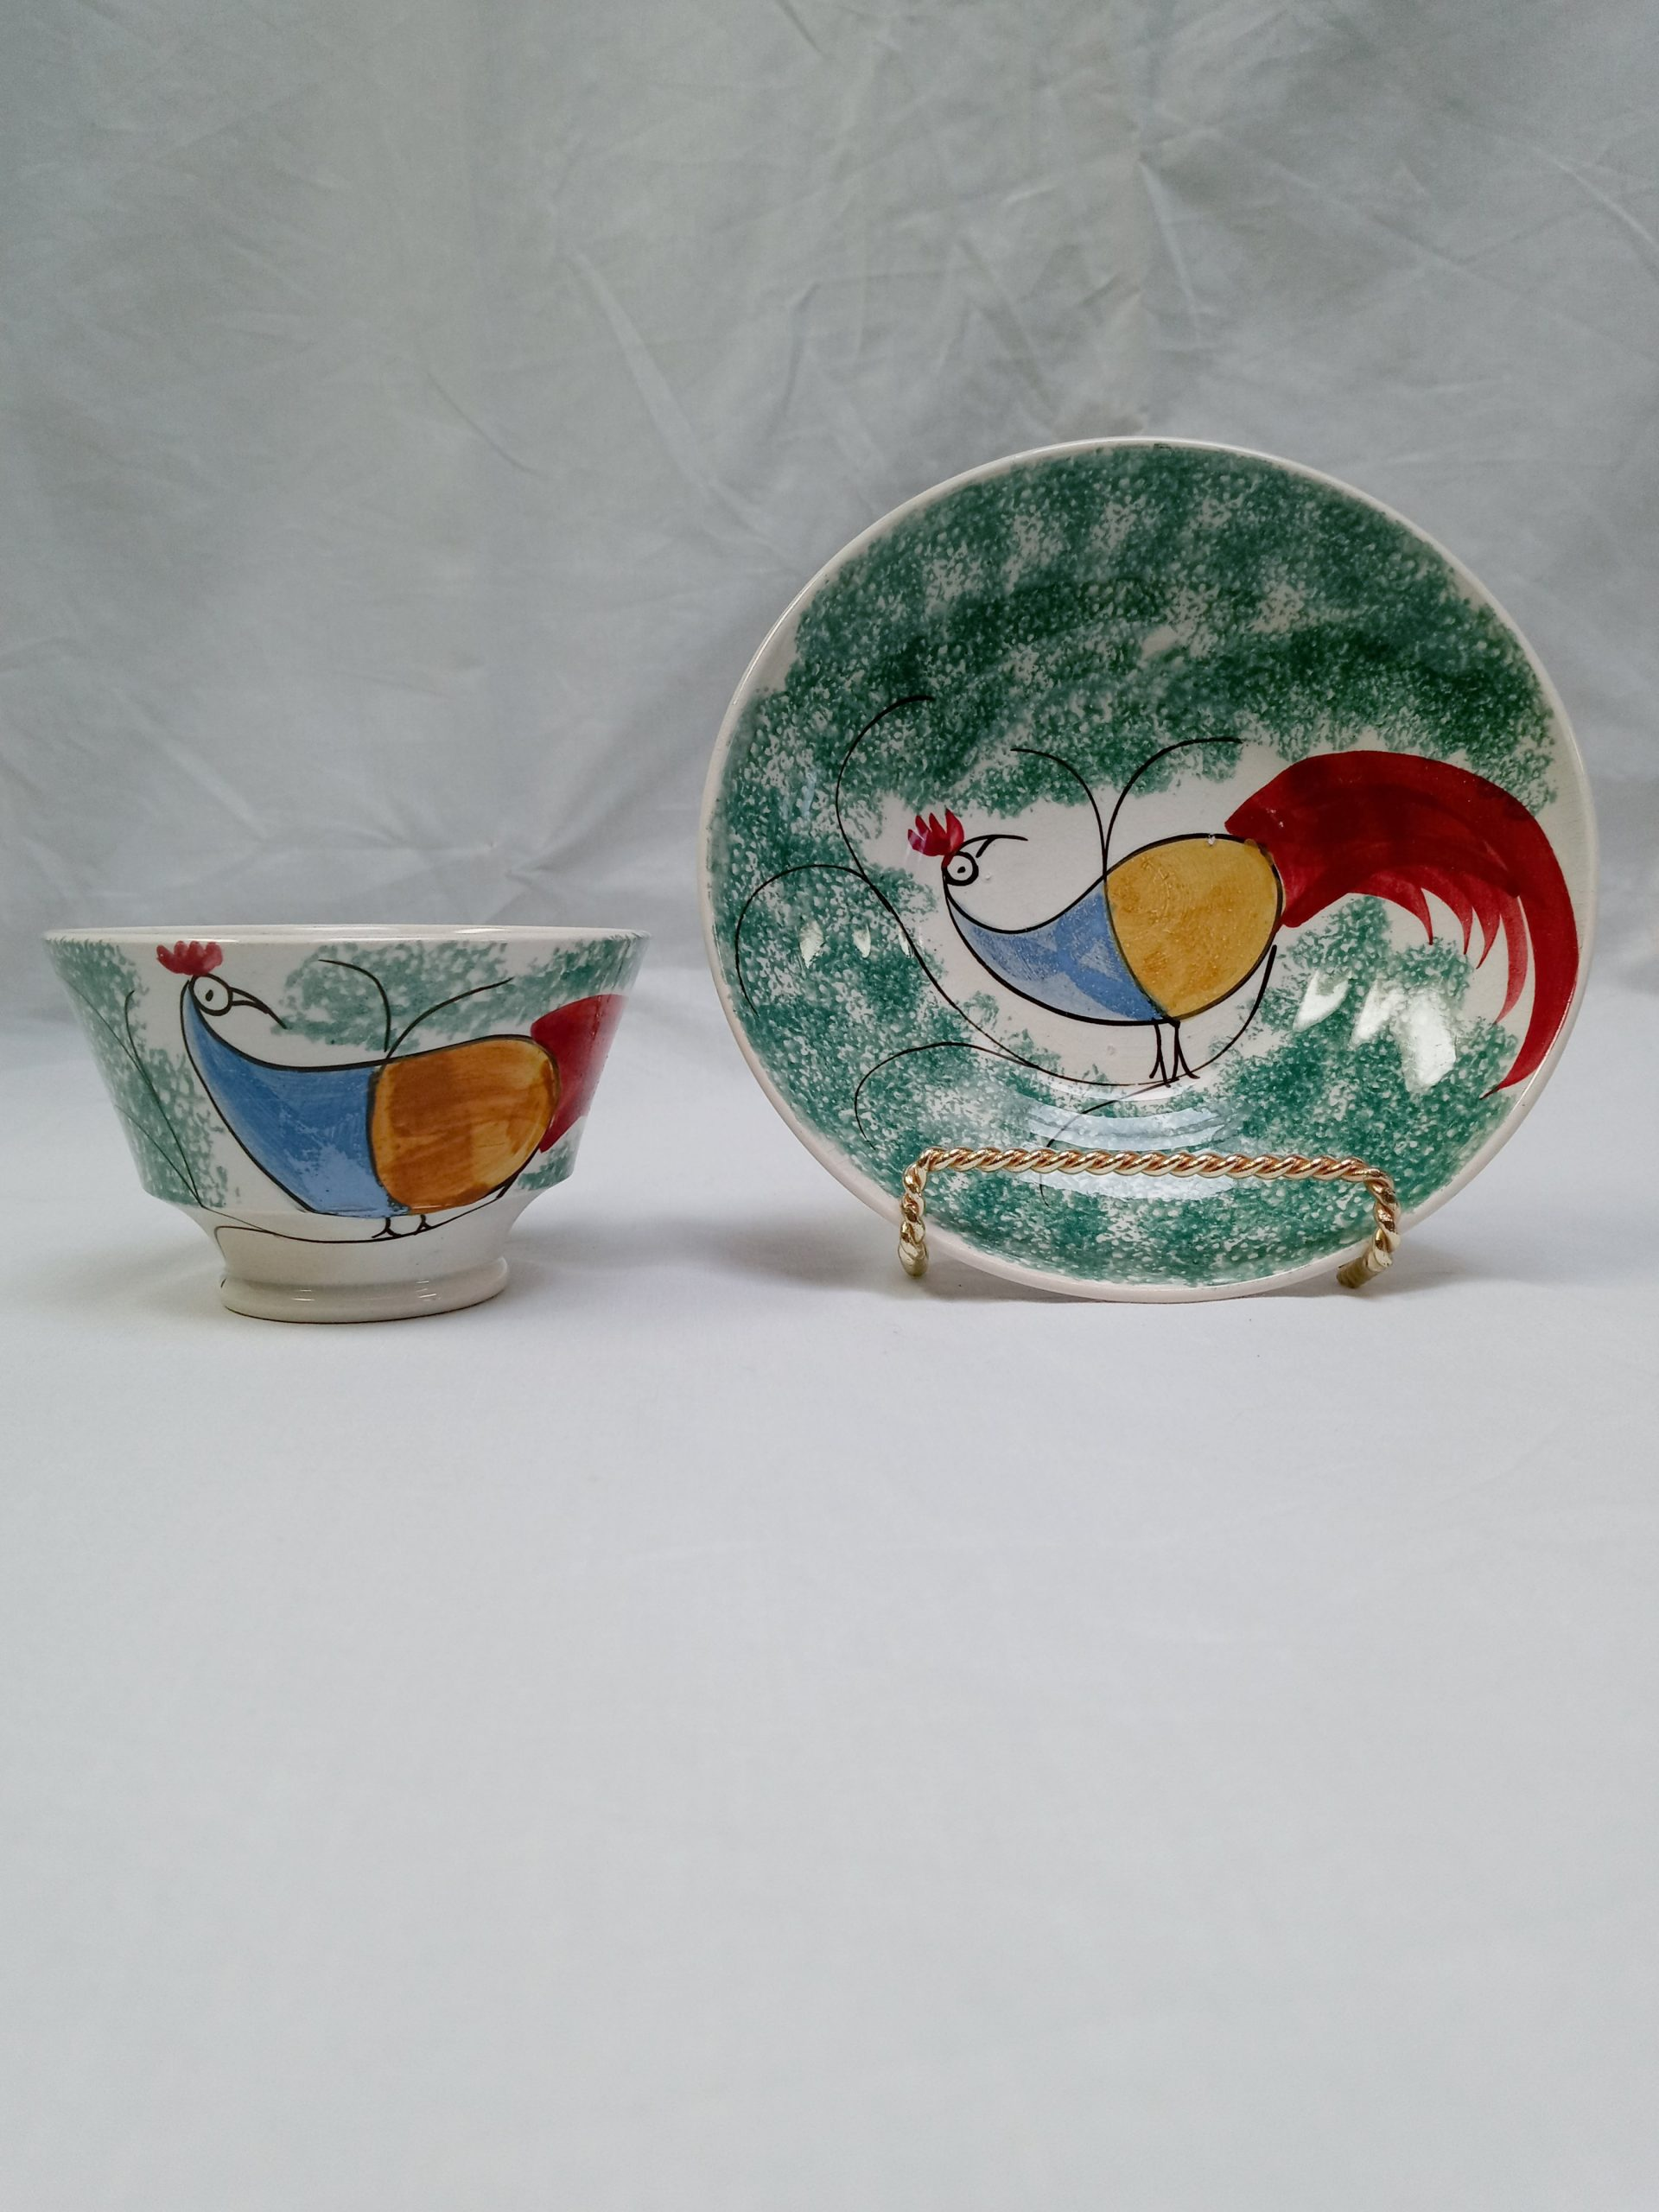 200-36851 Green Spatter Cup and Saucer Image